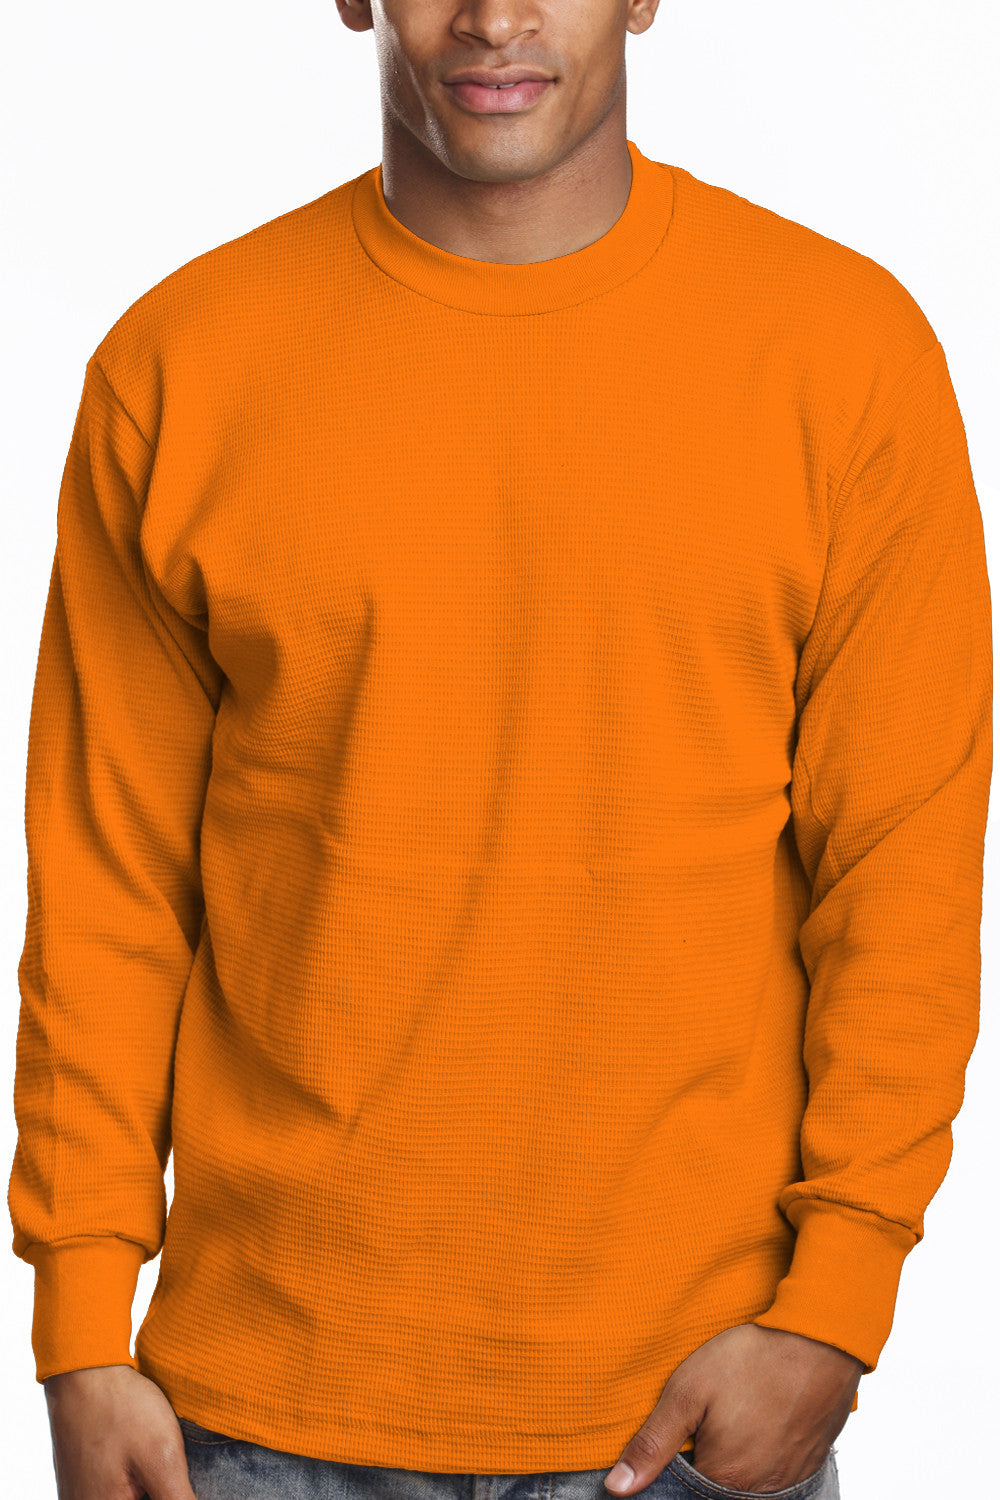 Thermal Knit Tops - Pro 5 Apparel